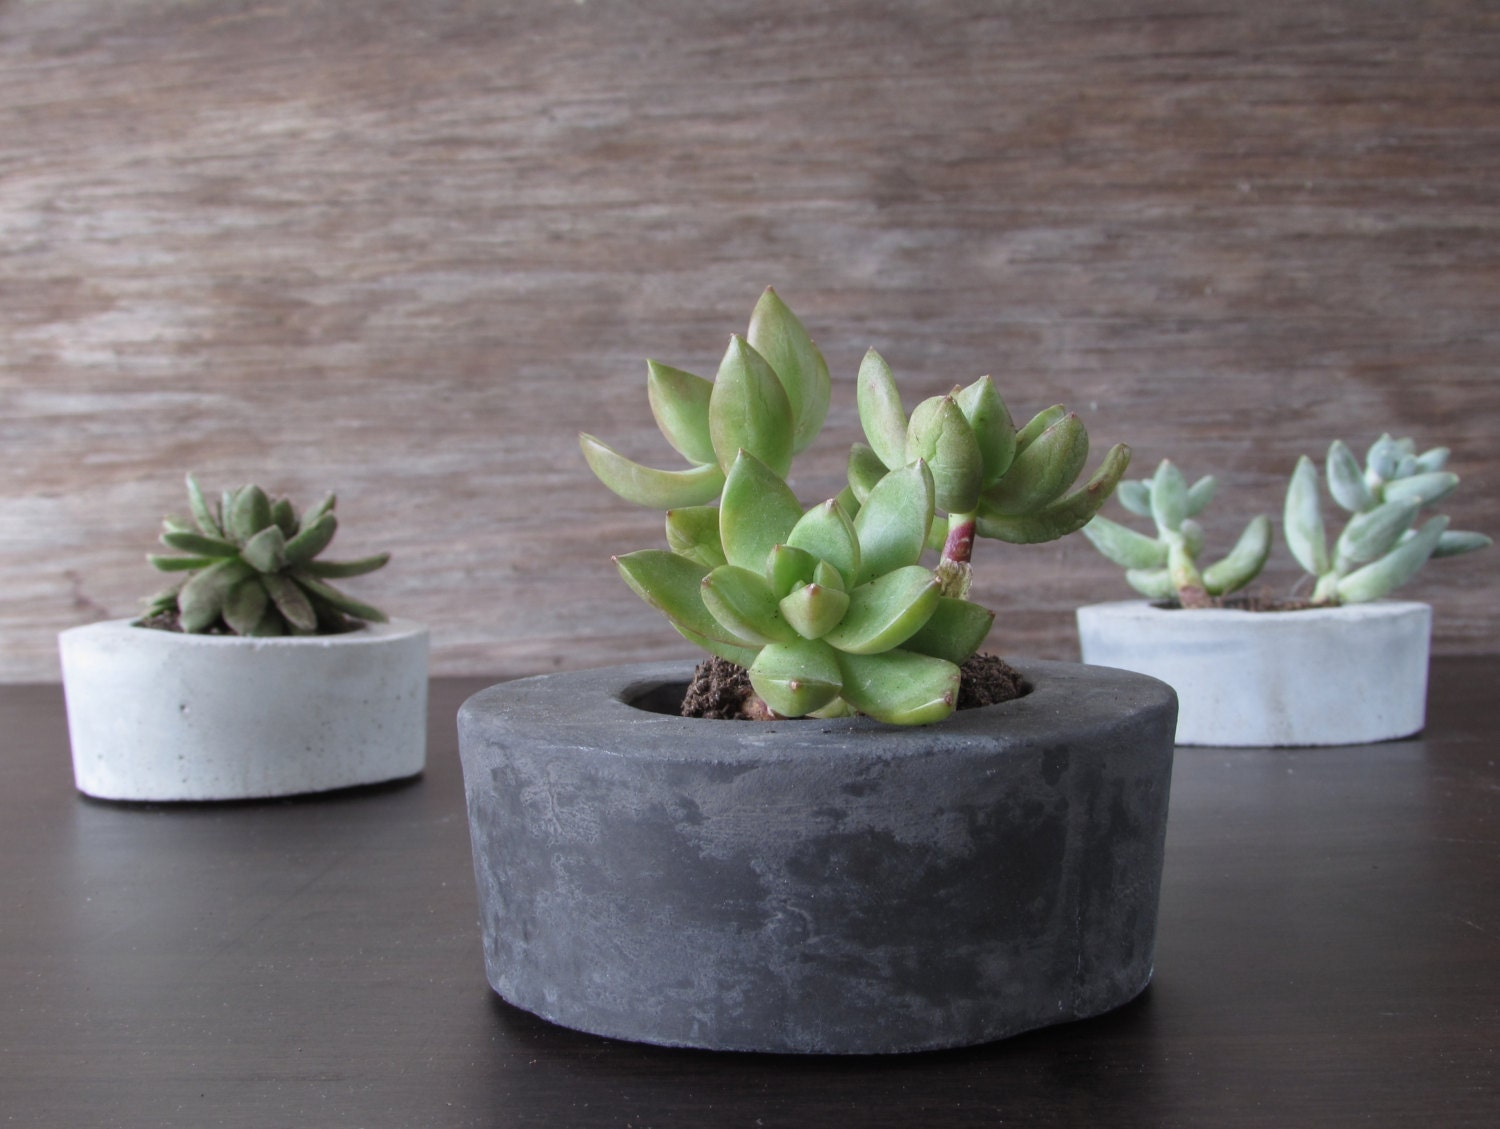 Mini Concrete Planters : Mini concrete planters succulent containers by badseedshop